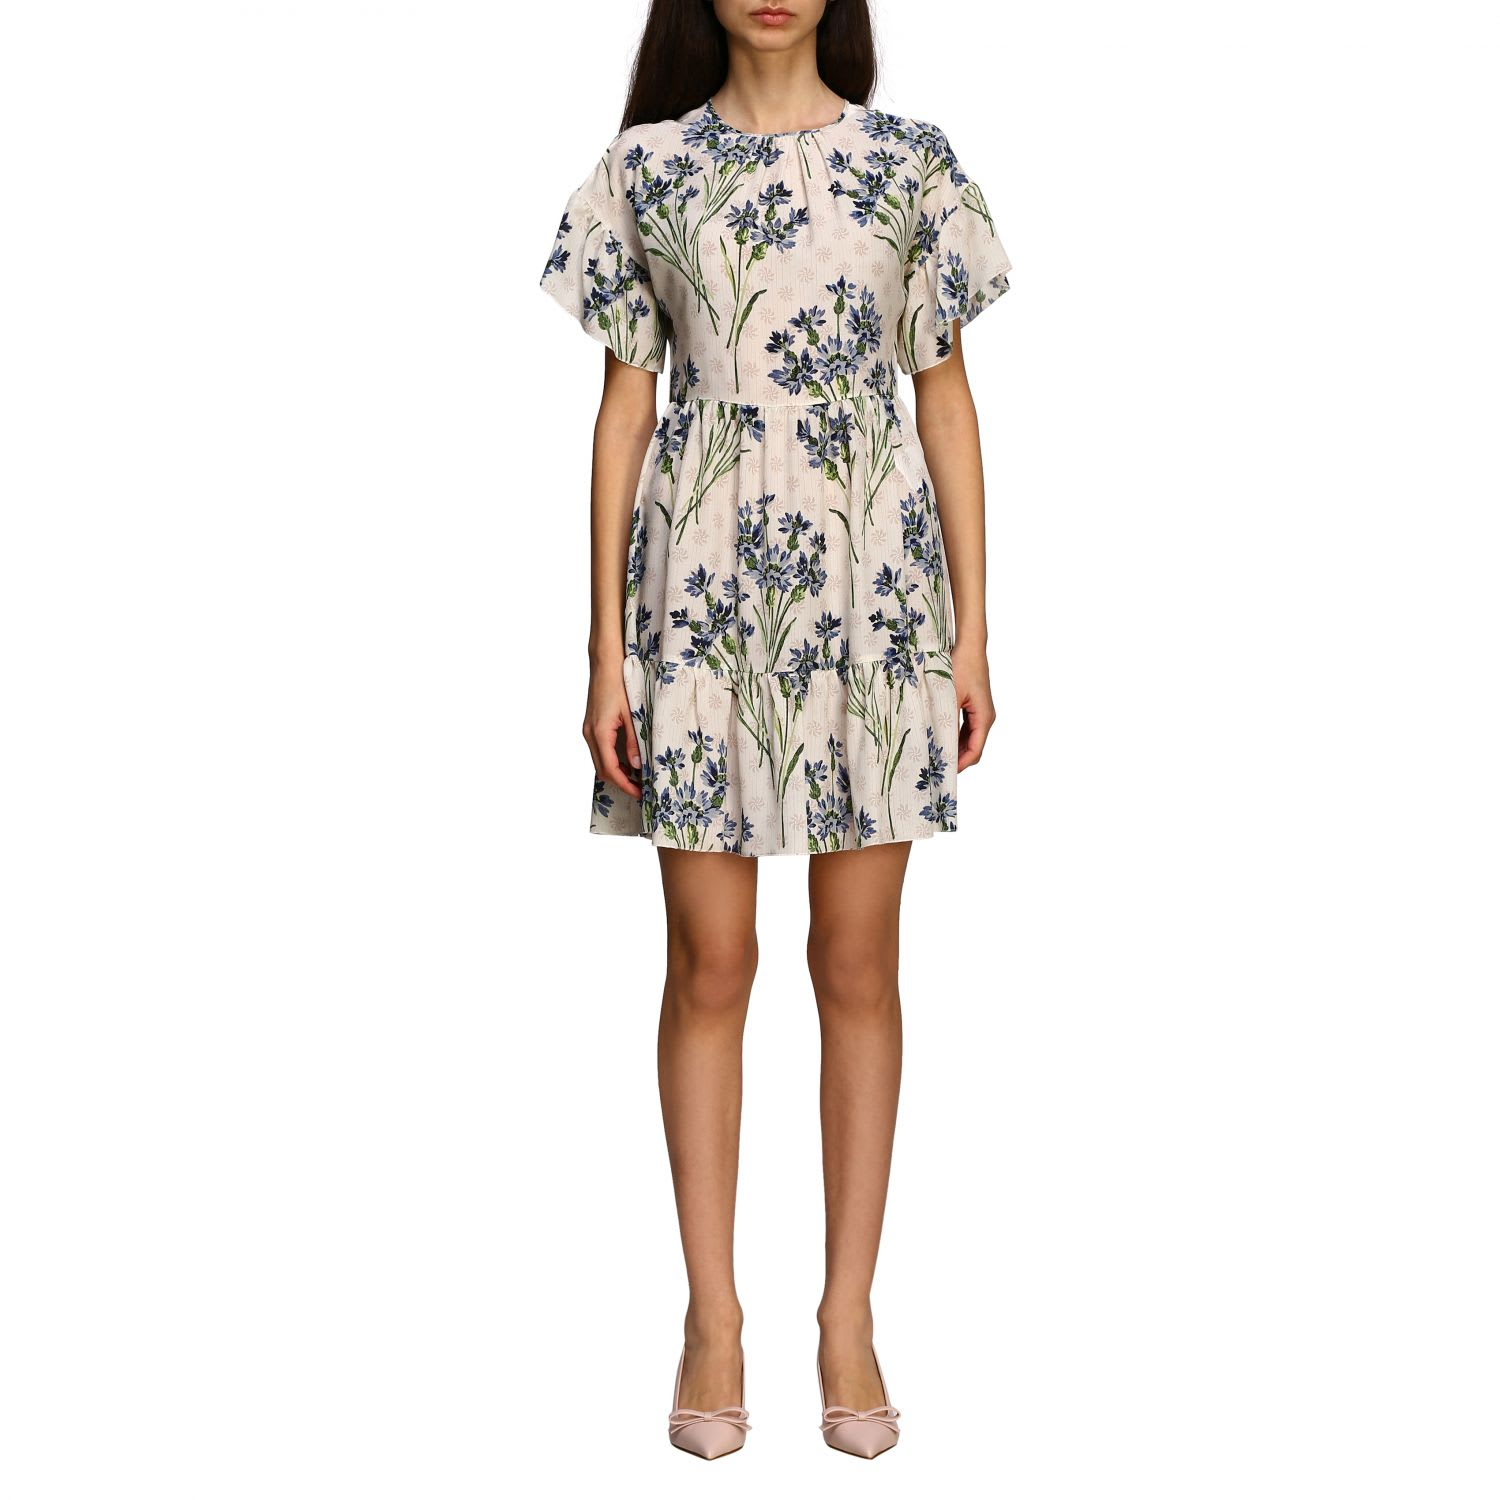 Buy Red Valentino Dress Red Valentino Silk Dress With Cornflower Print online, shop RED Valentino with free shipping